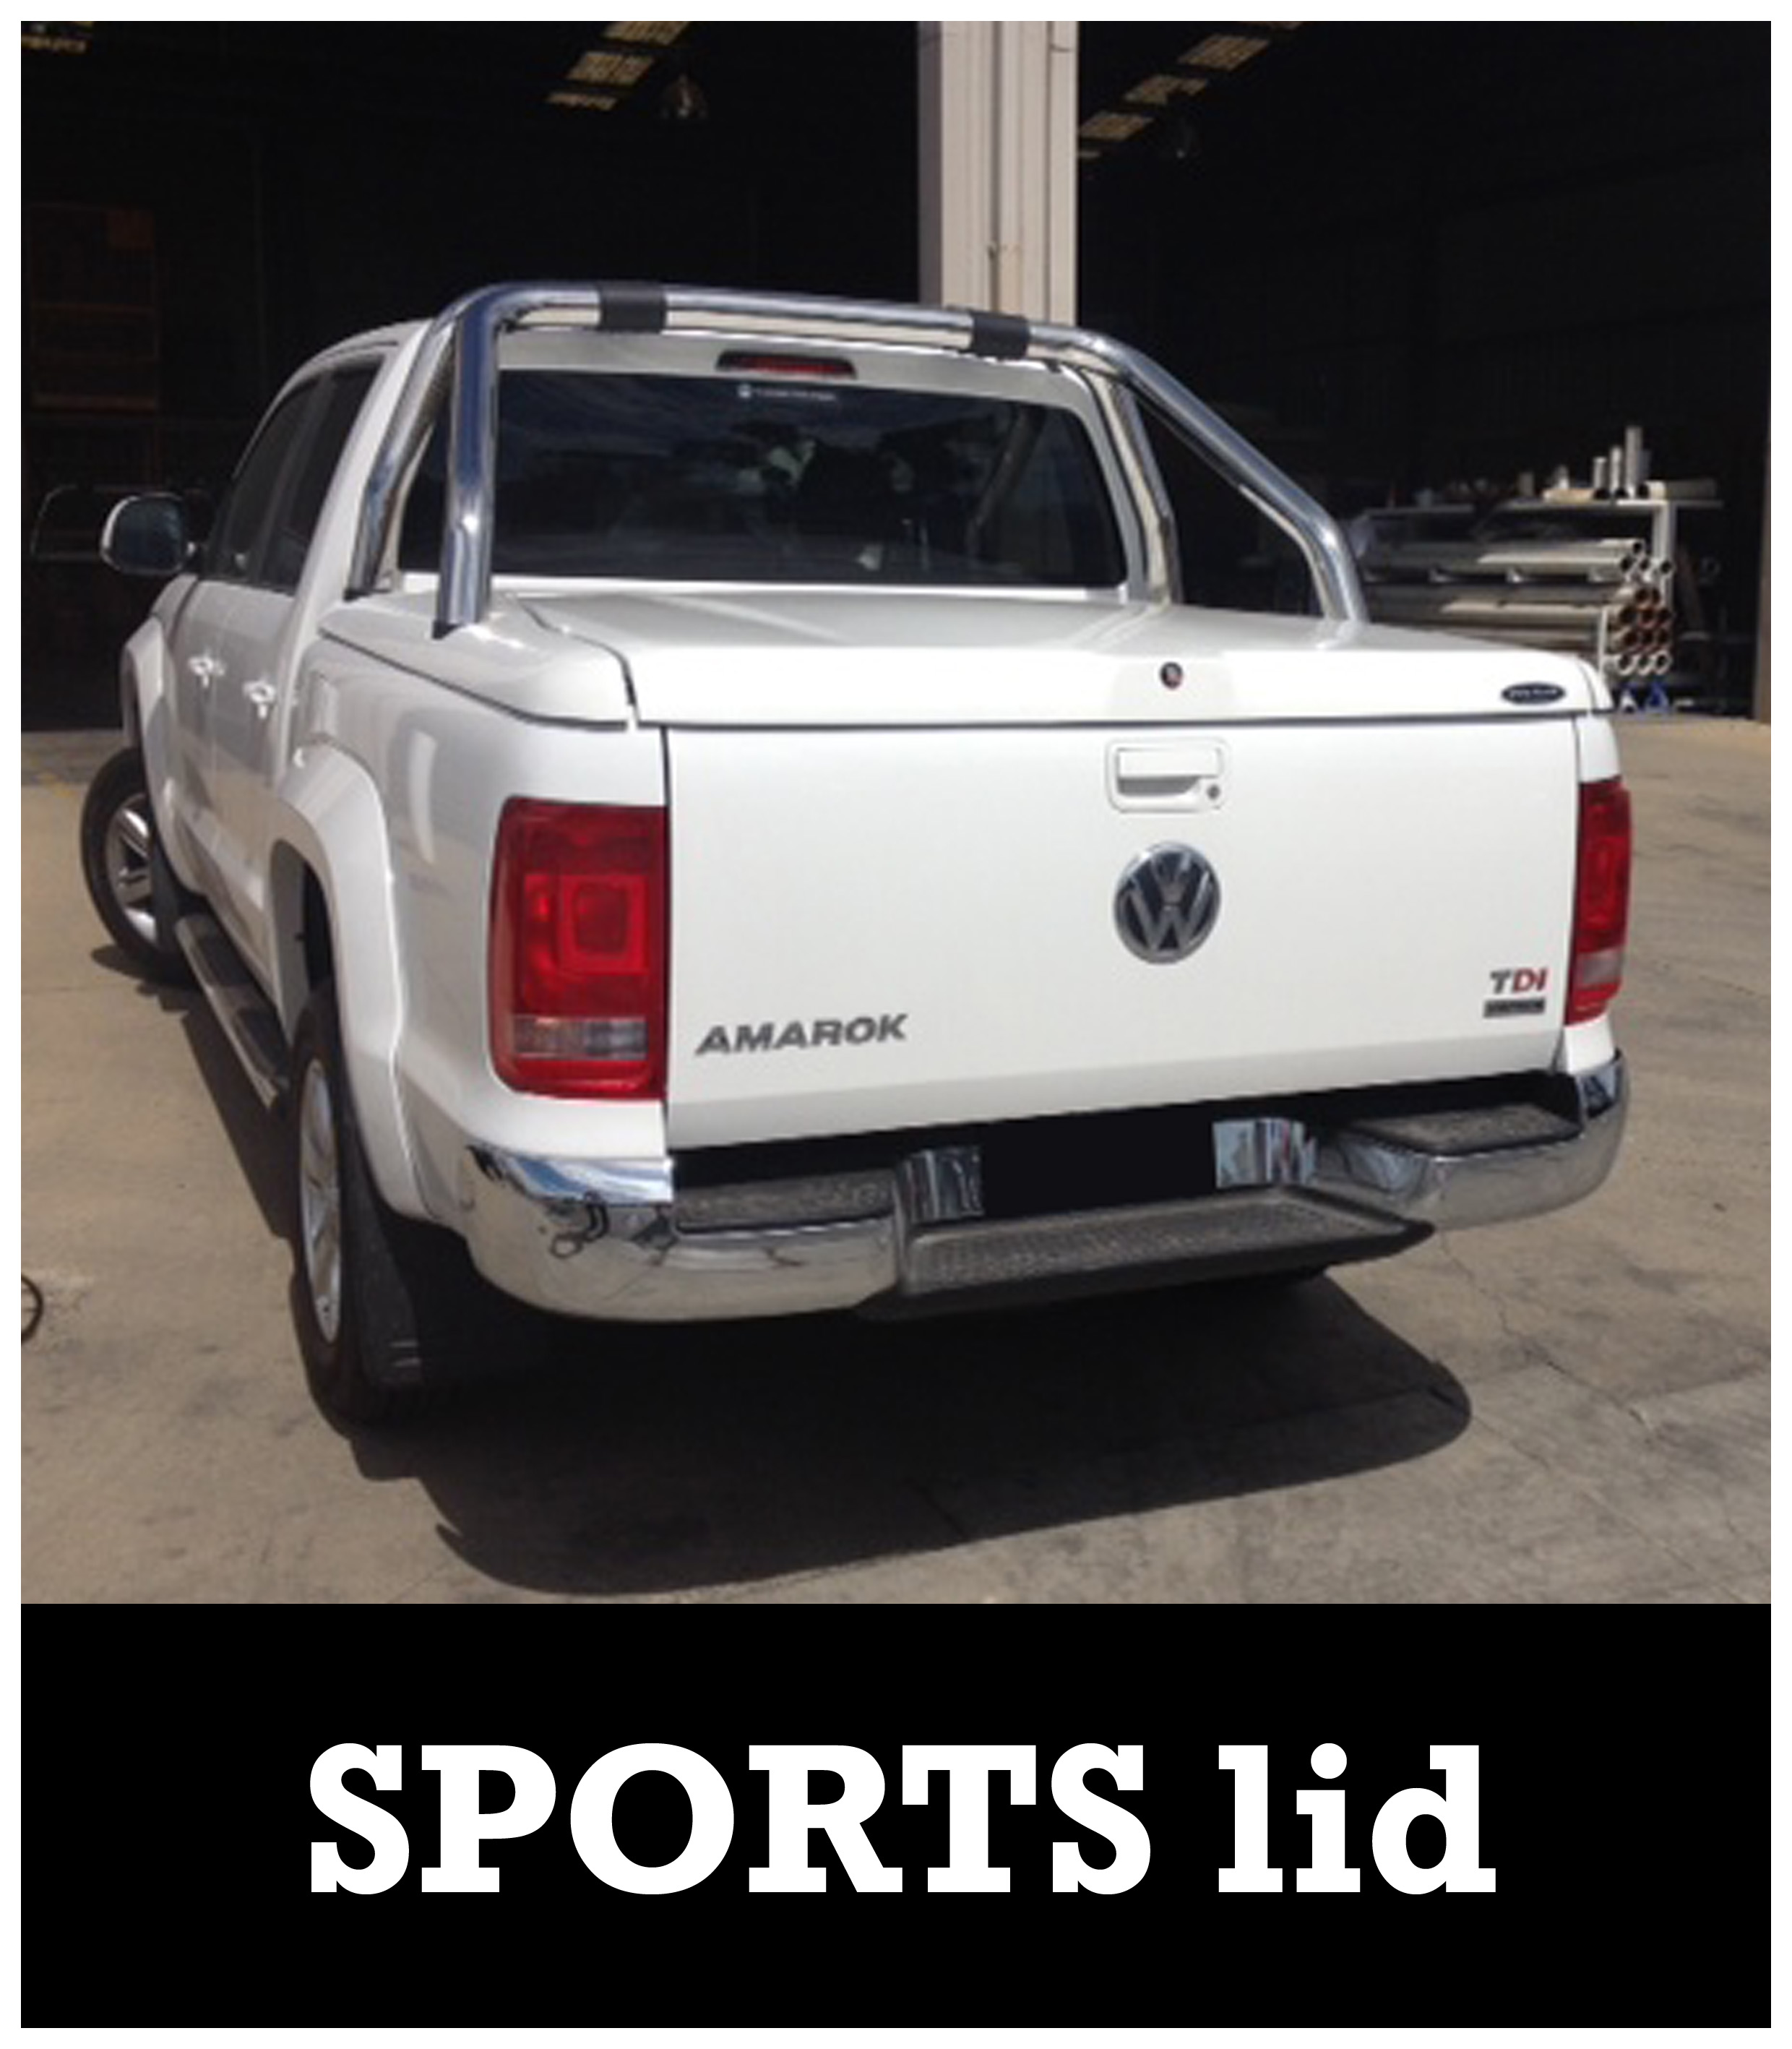 WEbsite_Amarok_SPORTS_Thumbnail_edited-1.jpg